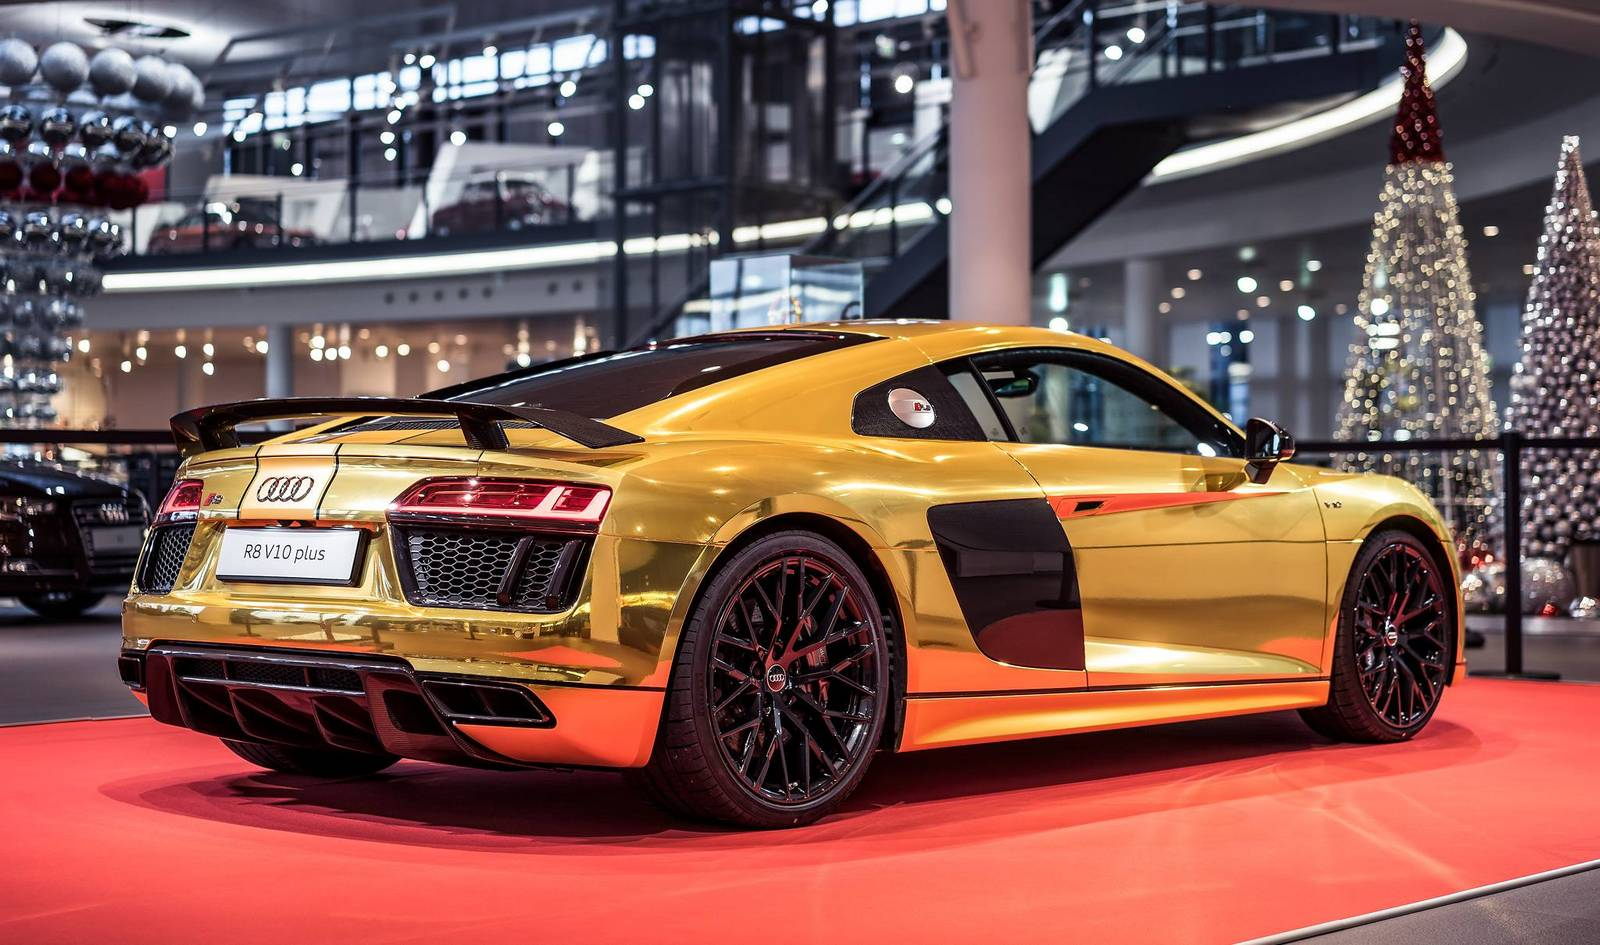 mclaren bp23 with Golden Audi R8 V10 Plus Revealed on Golden Audi R8 V10 Plus Revealed moreover Mclaren Bp23 Hyper Gt First Official Test Mule Photos moreover The 2019 Mclaren Bp23 Is A Car Worth Waiting For Feature in addition Mclaren F1 The Ultimate Sports Car together with Mclaren 570gt Mso Pebble Beach.